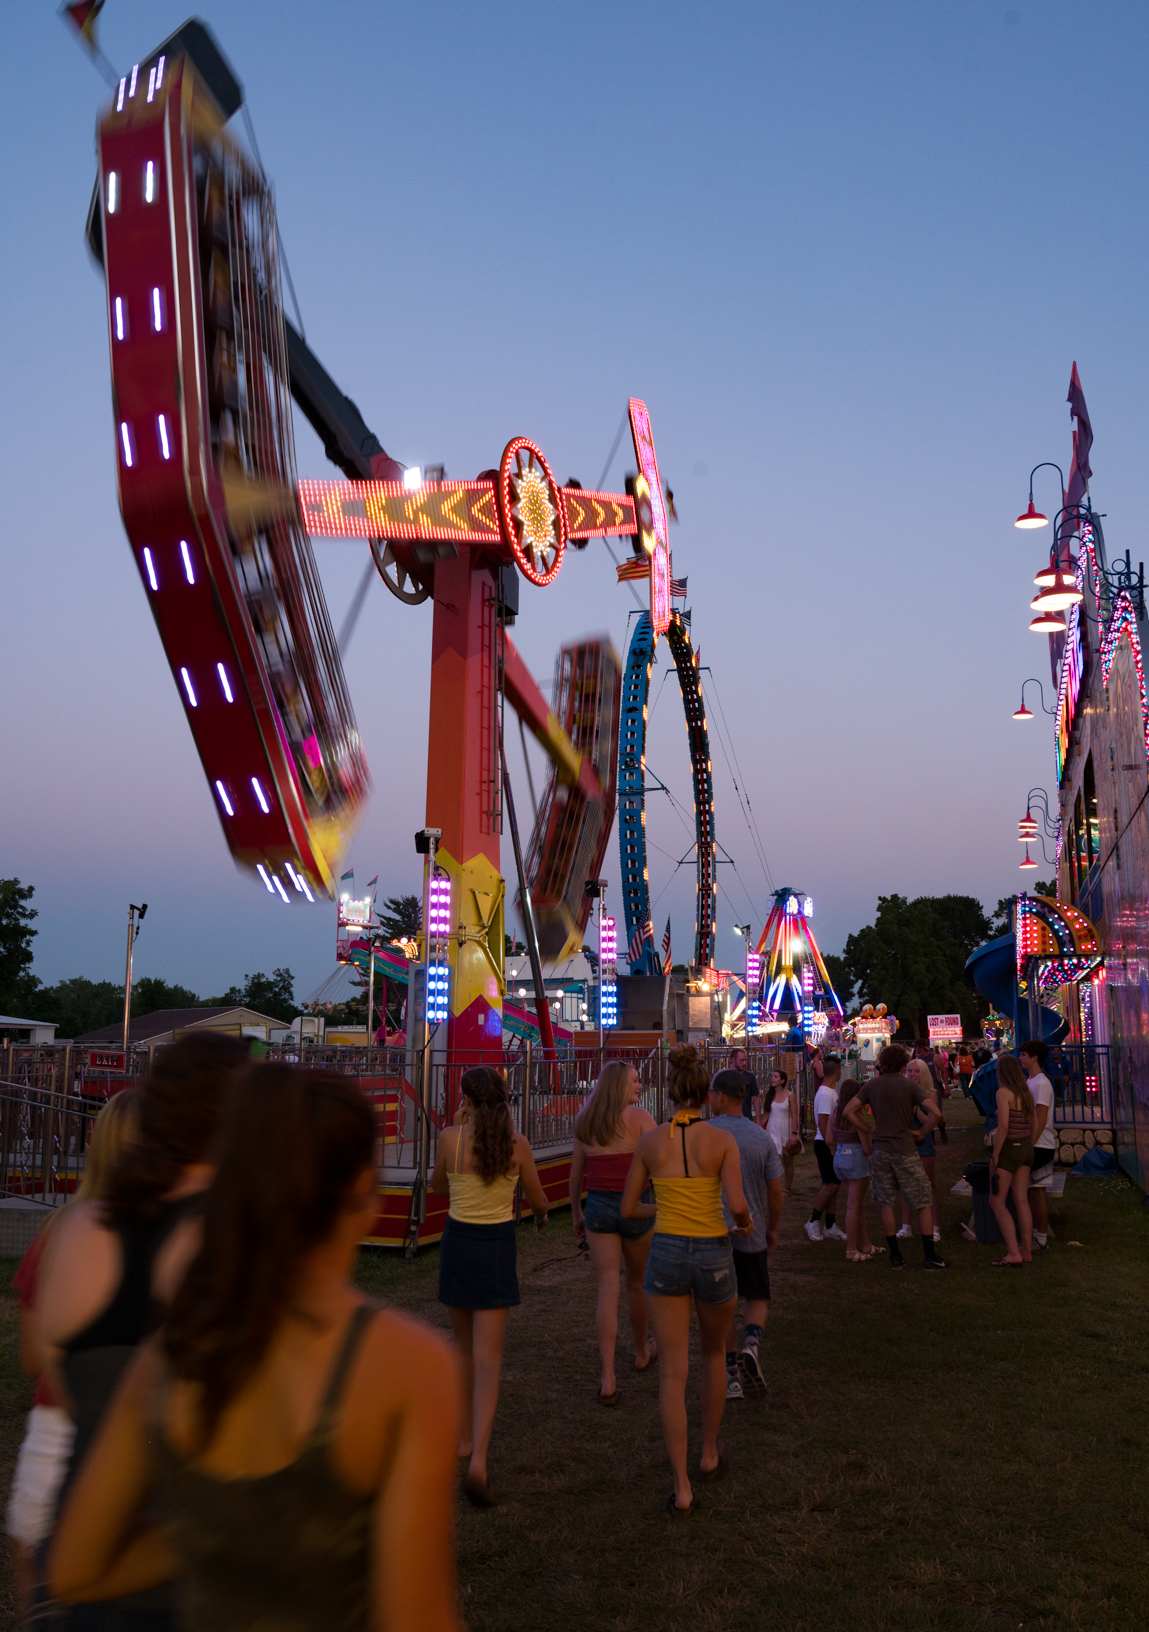 Midway rides light-up the night sky as teenagers enjoy the Jones County Fair in Monticello. Photo credit: Joseph L. Murphy/Iowa Soybean Association